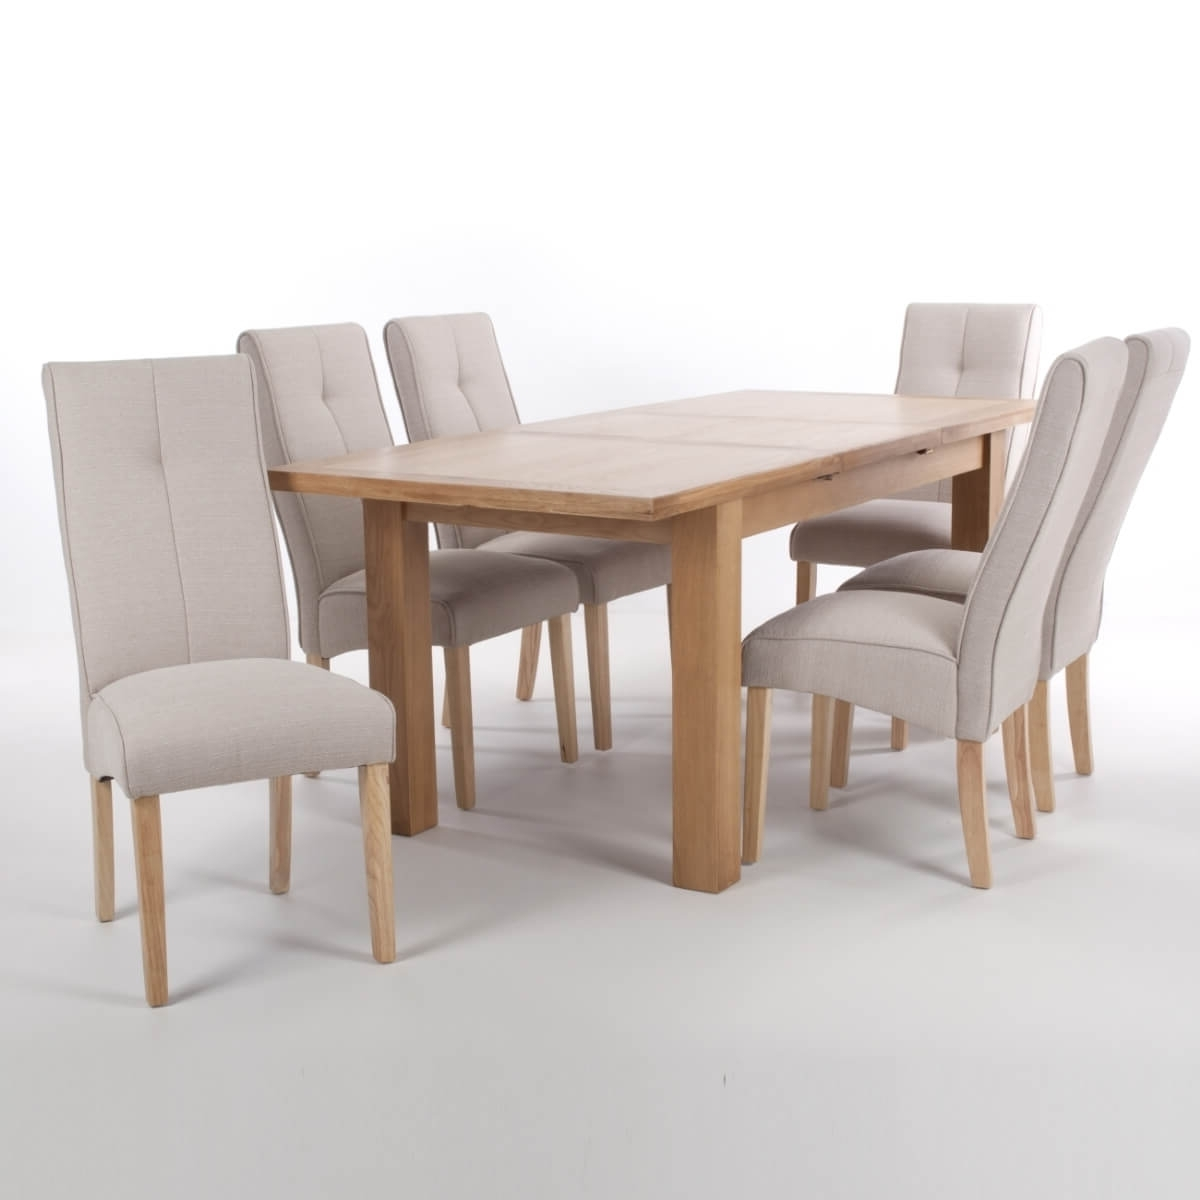 Best And Newest Dining Set – Solid Oak Extending Dining Table And 6 Linea Cream Within Solid Oak Dining Tables And 6 Chairs (View 2 of 25)